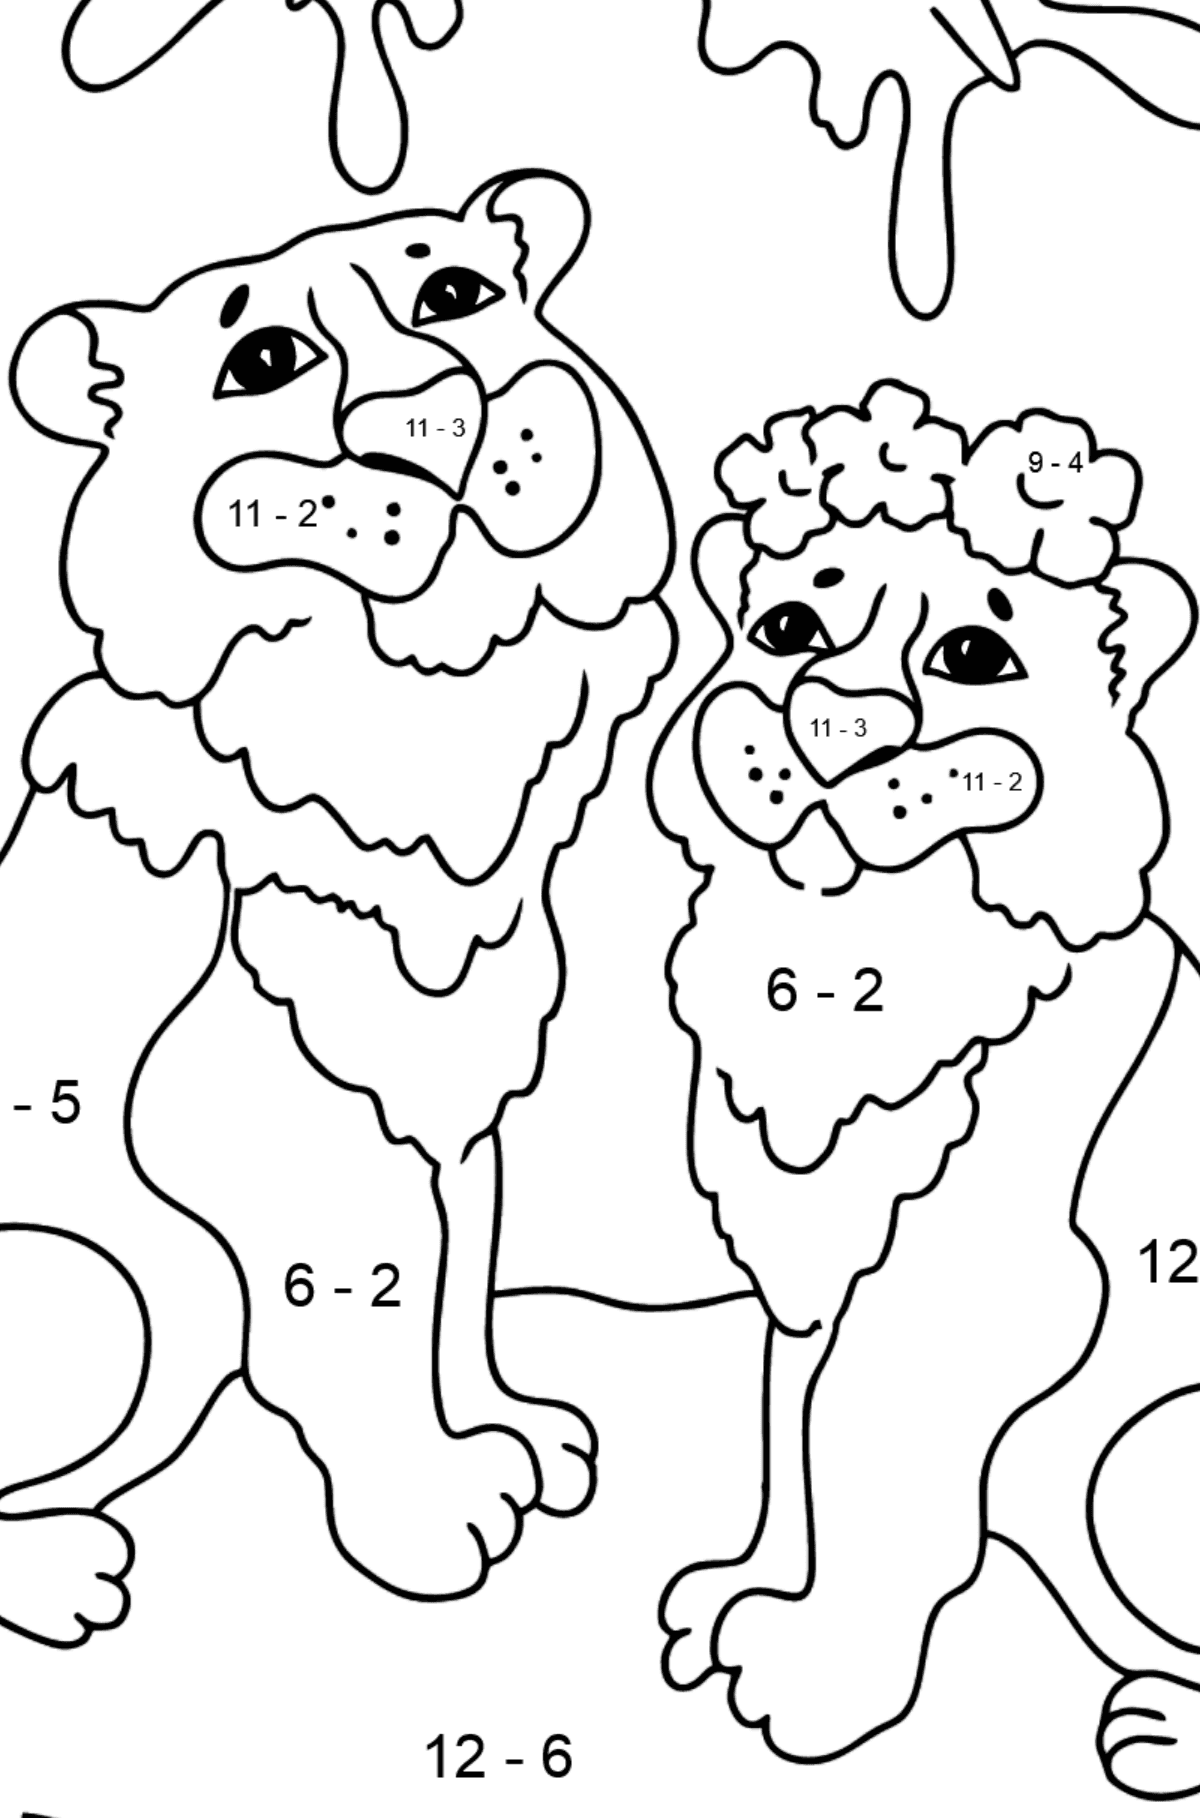 Coloring Page - A Tiger with a Tigress - Math Coloring - Subtraction for Kids